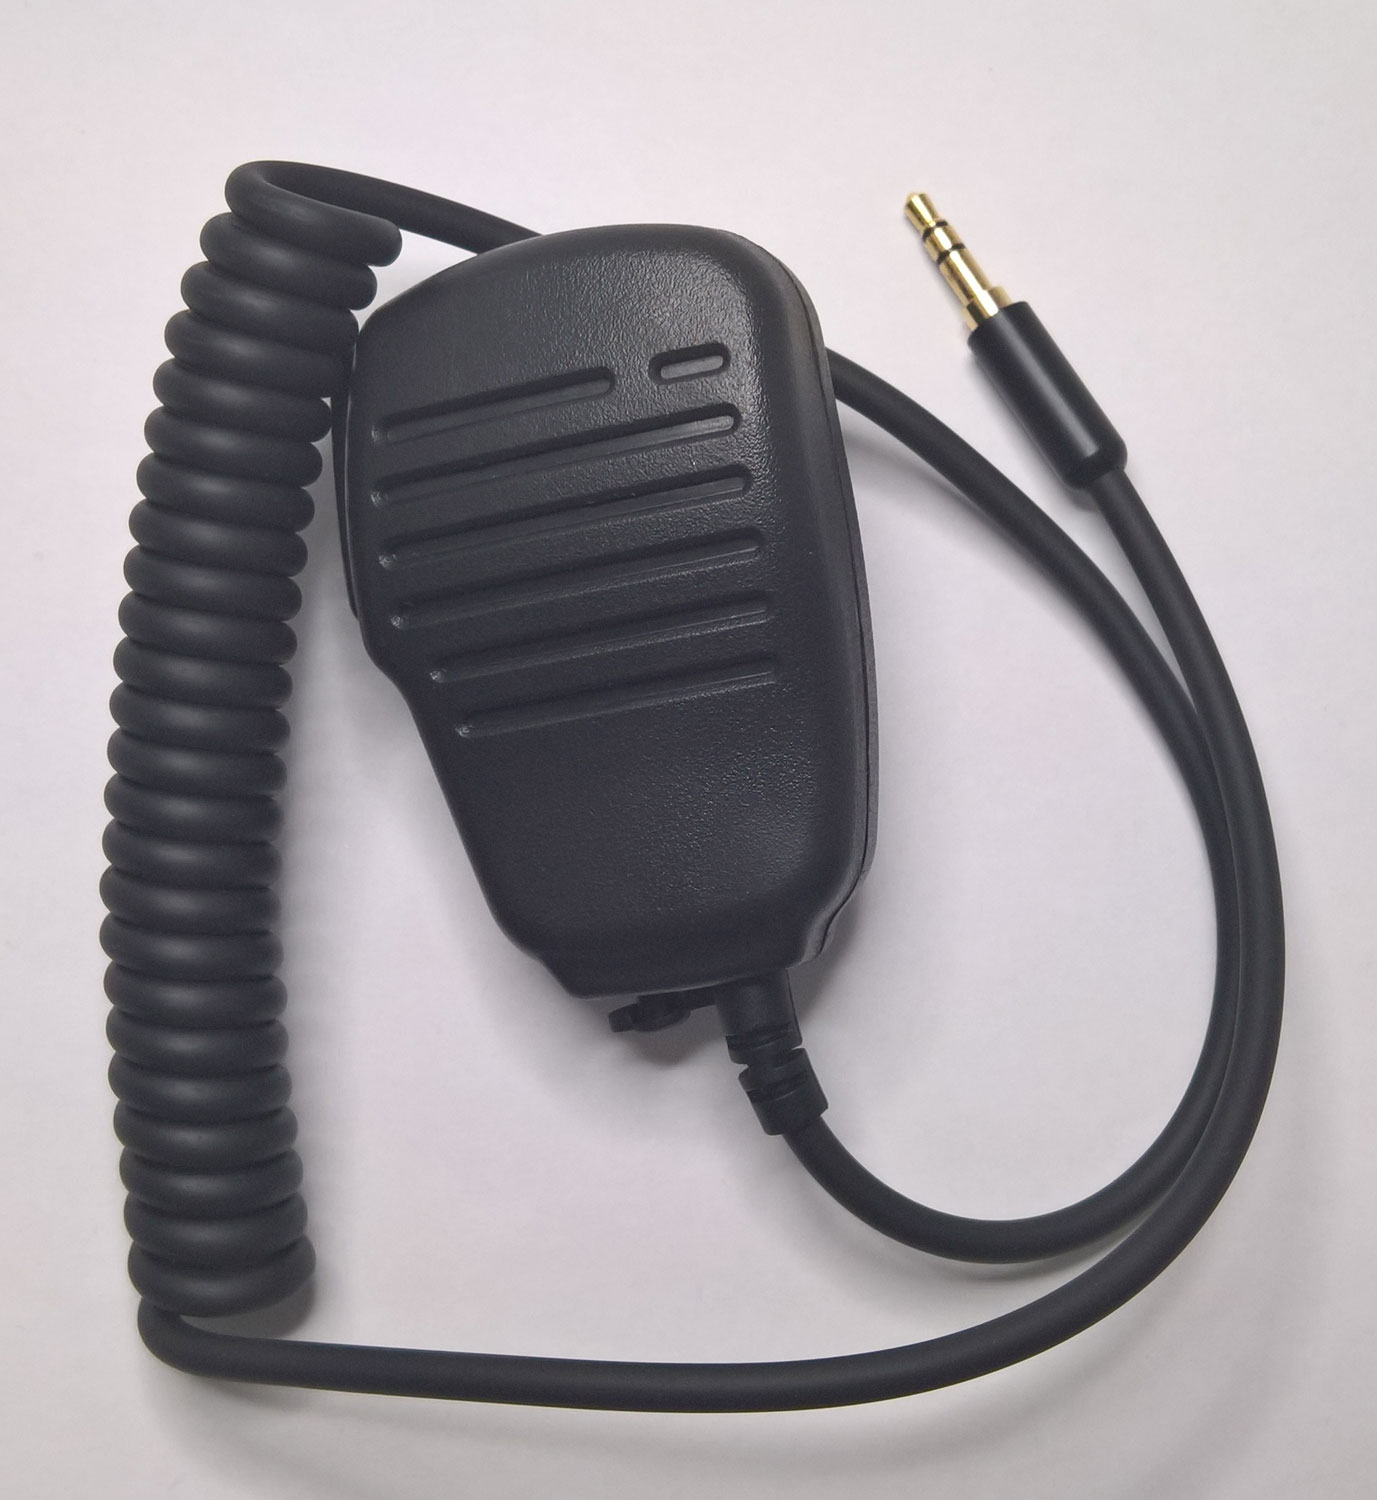 Replacement microphone for Xiegu G1M & X1M transceivers